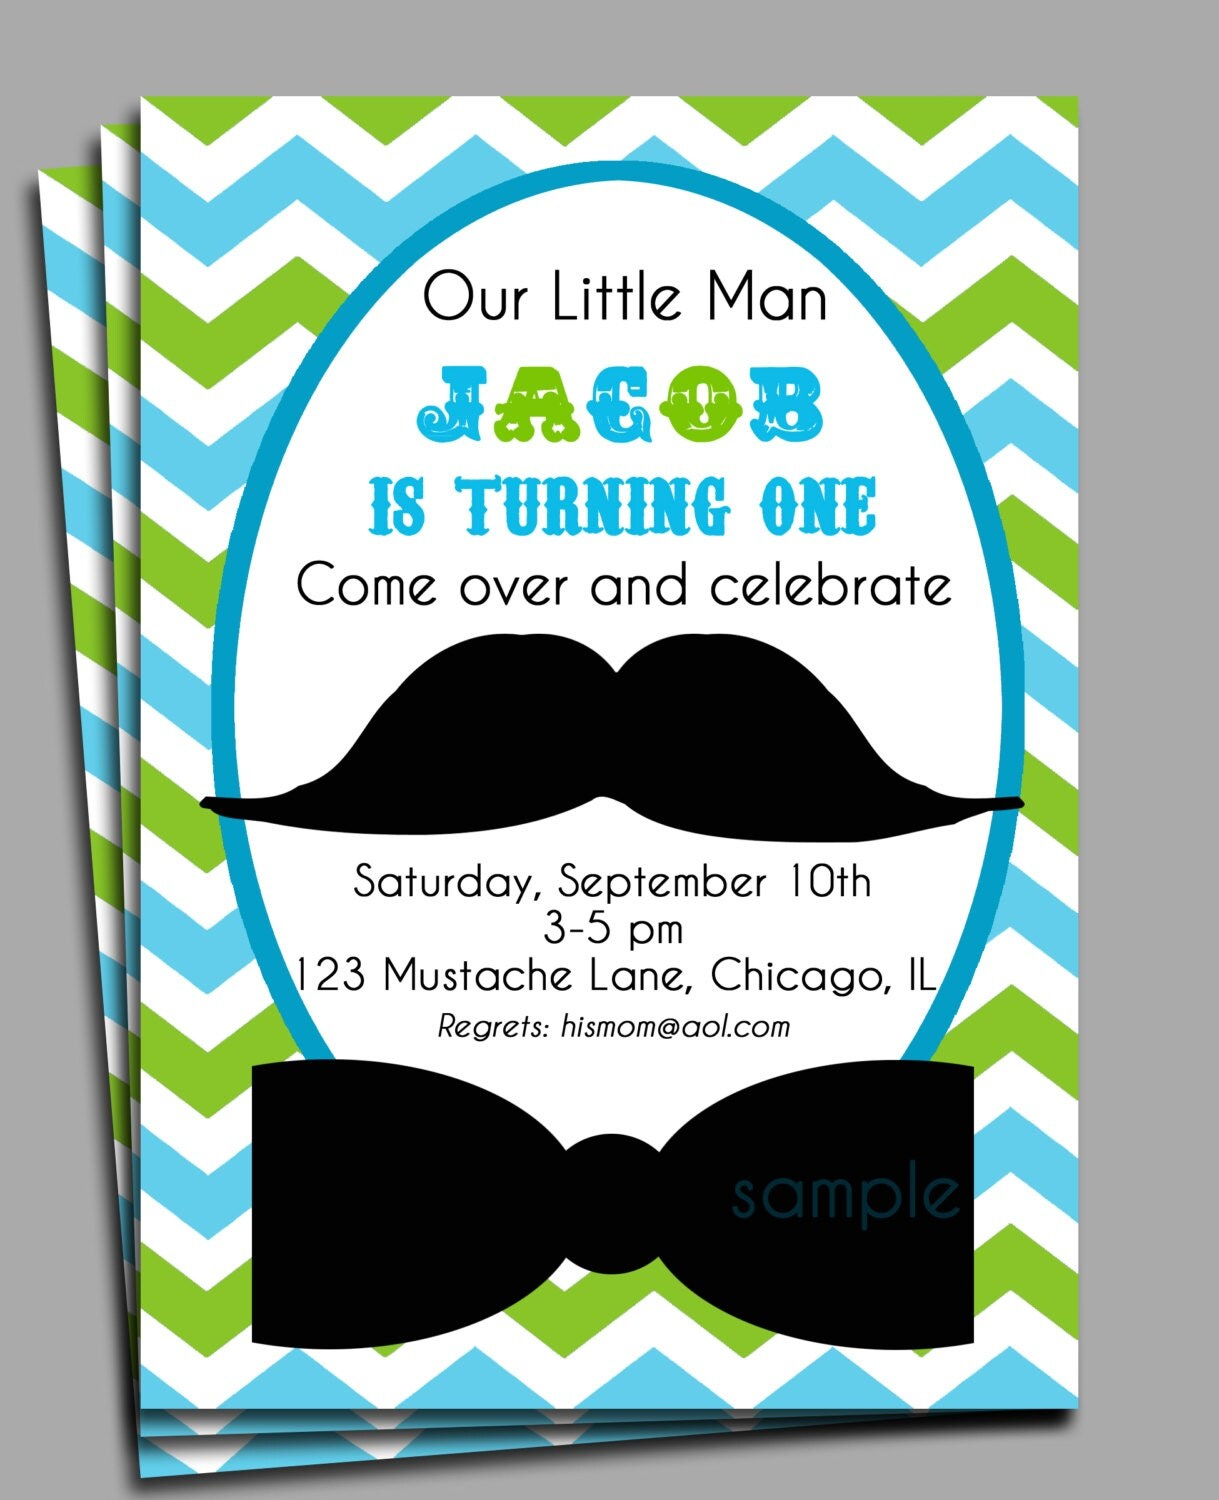 Little Man Invitations Baby Shower was amazing invitations layout